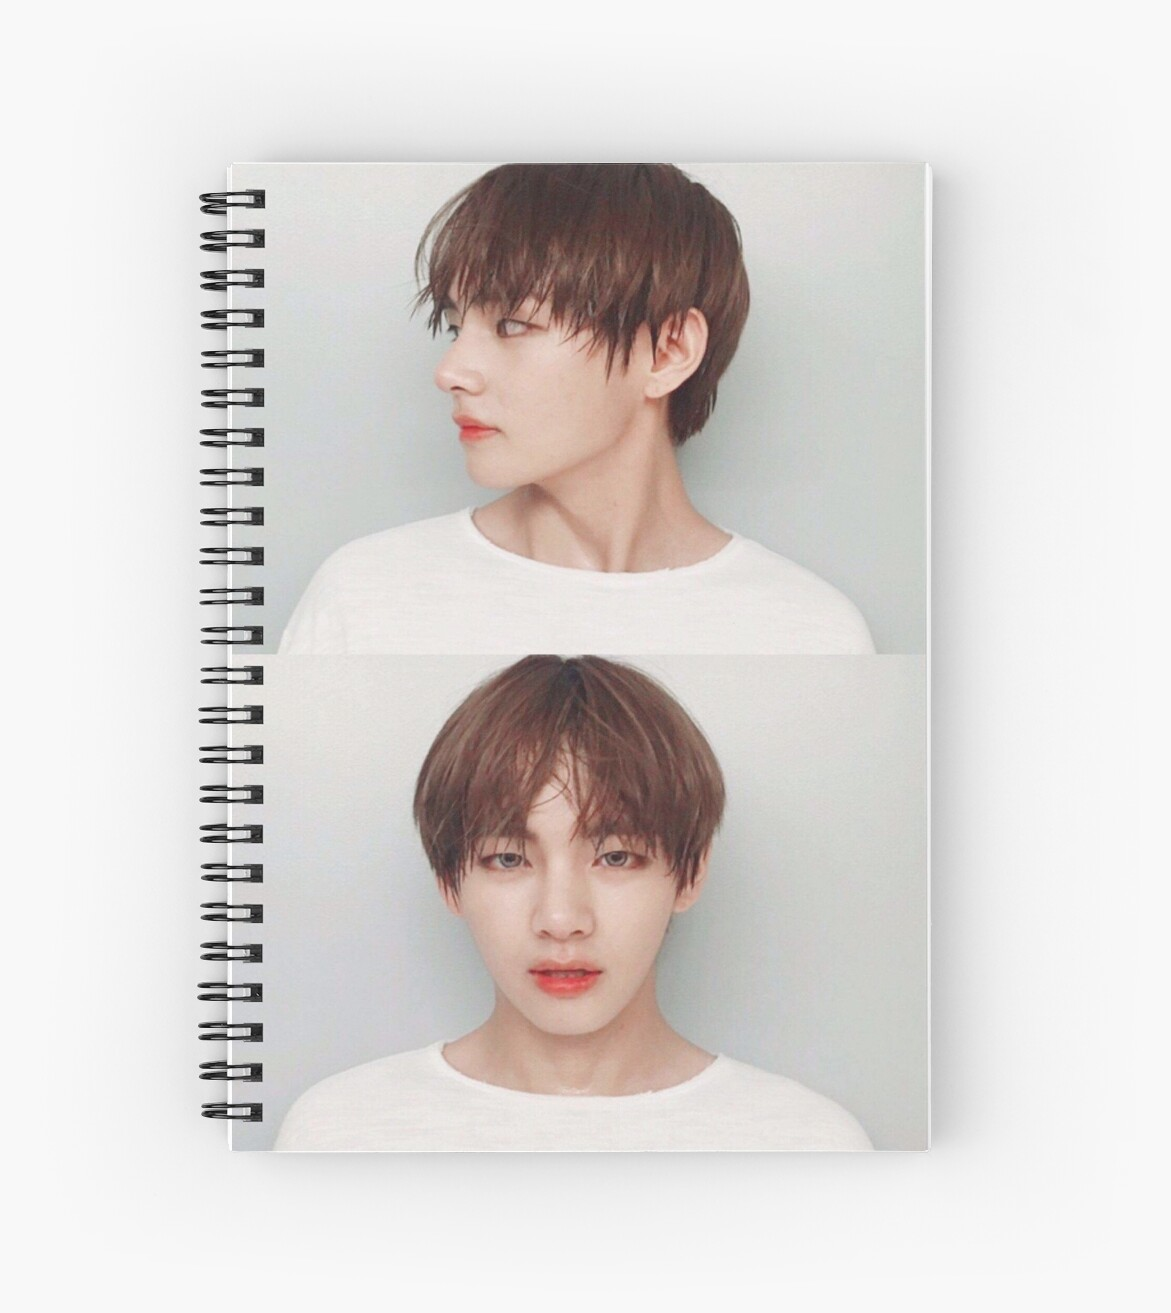 Taehyung #1 by LovelyLu